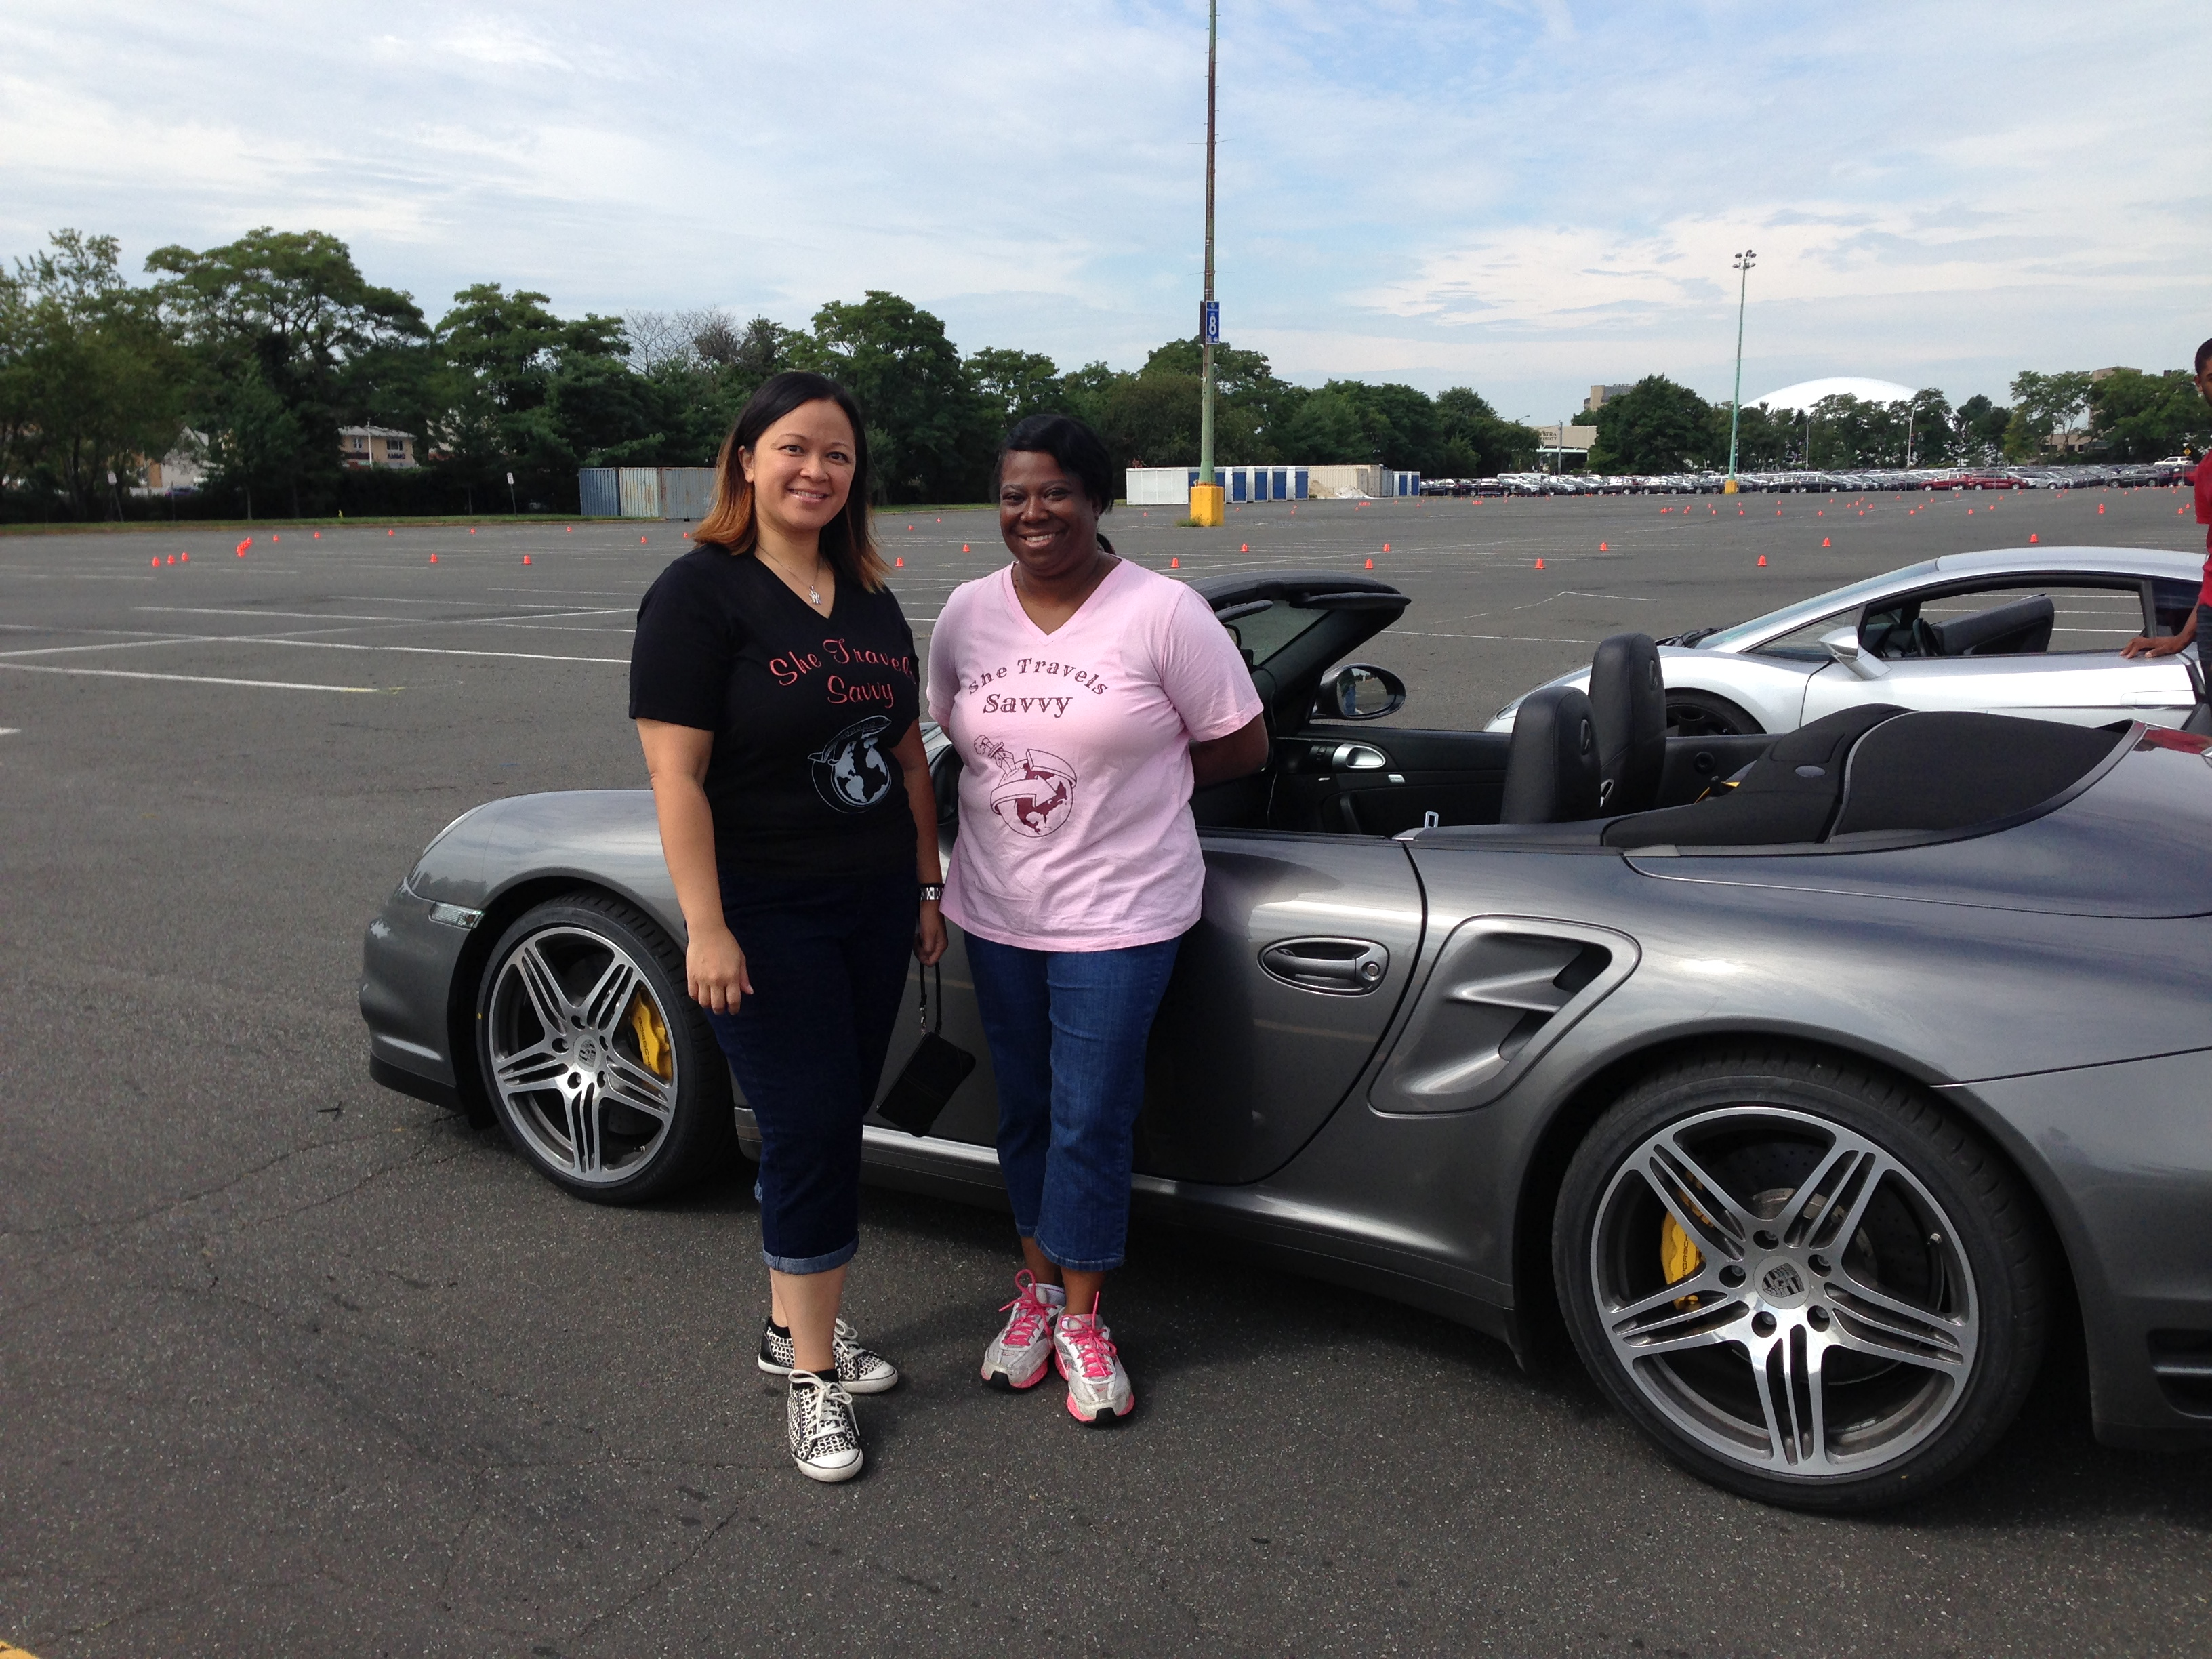 Cool Girls Fast Cars Who Says Girls Cant Drive Fast Cars - Cool cars driving